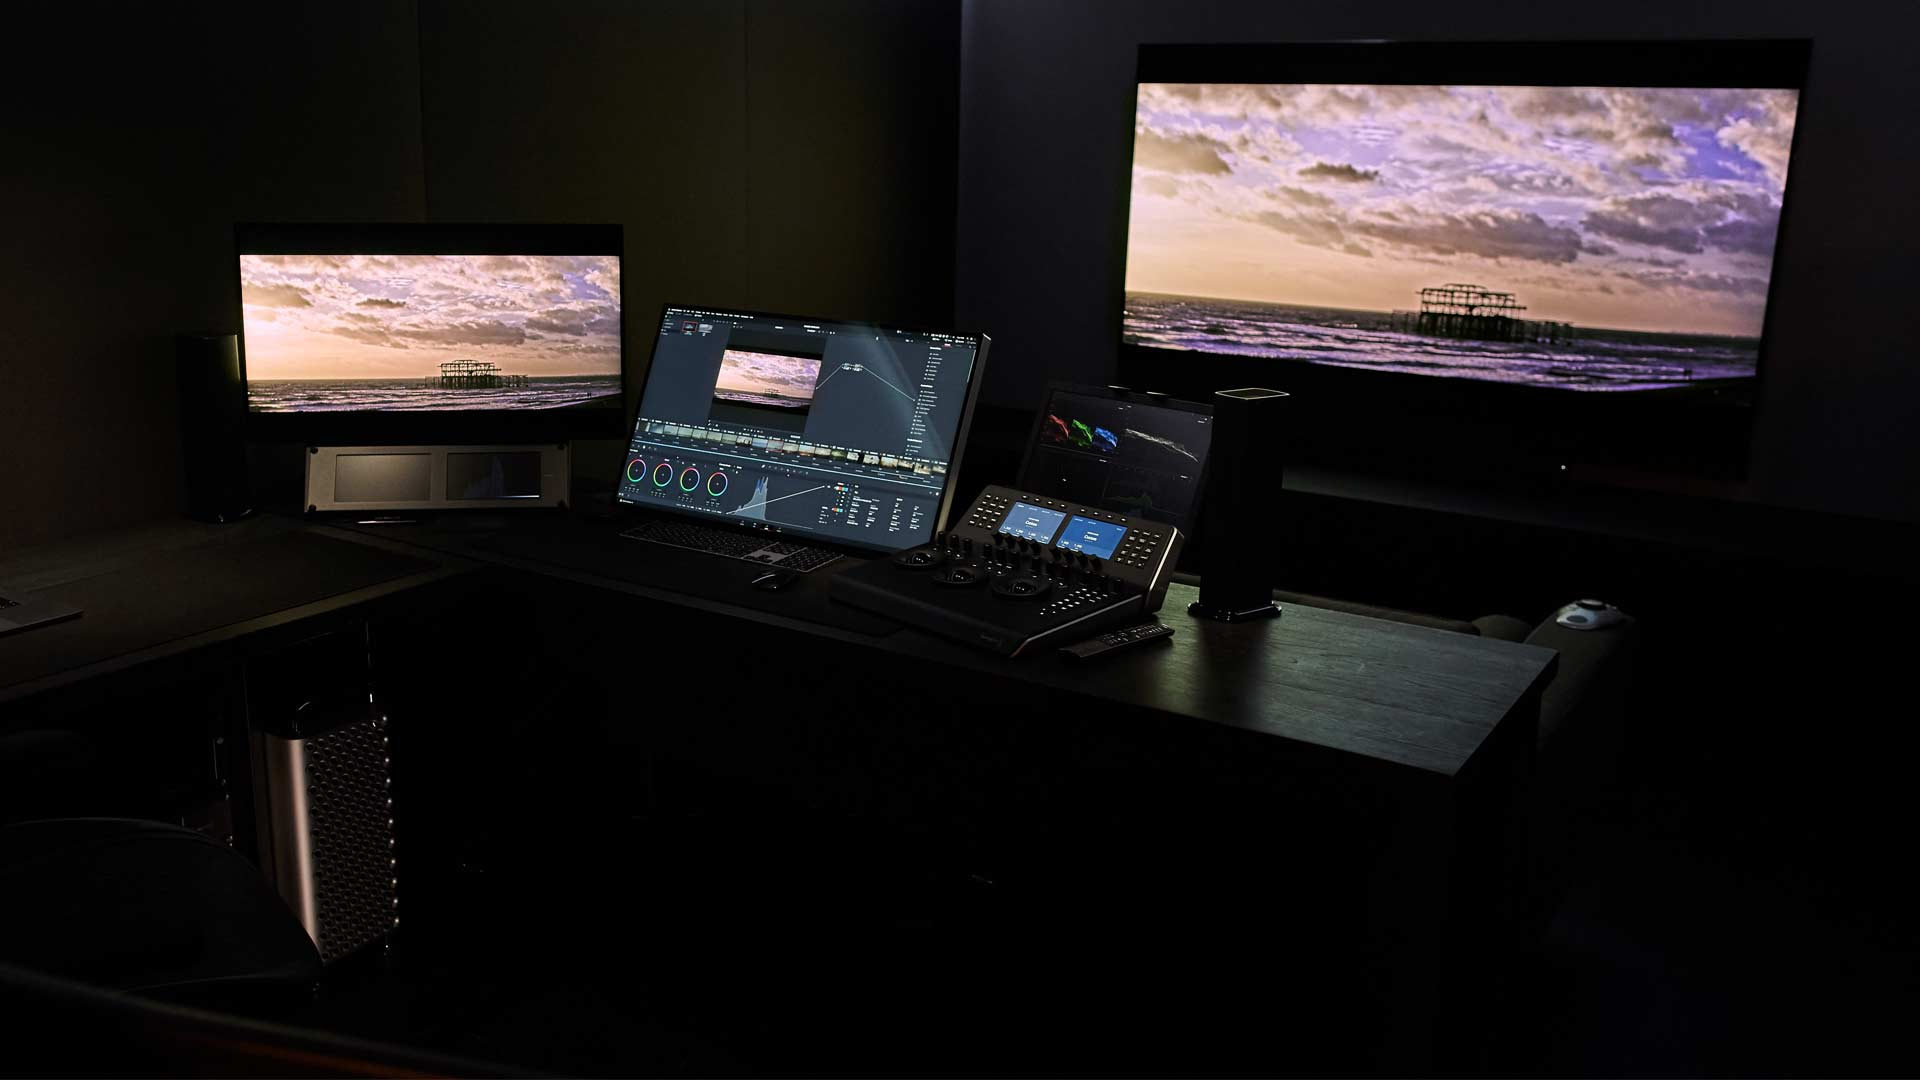 First Impressions of the New Mac Pro and the Pro Display XDR Used on Real-world Projects by James Tonkin at Hangman.